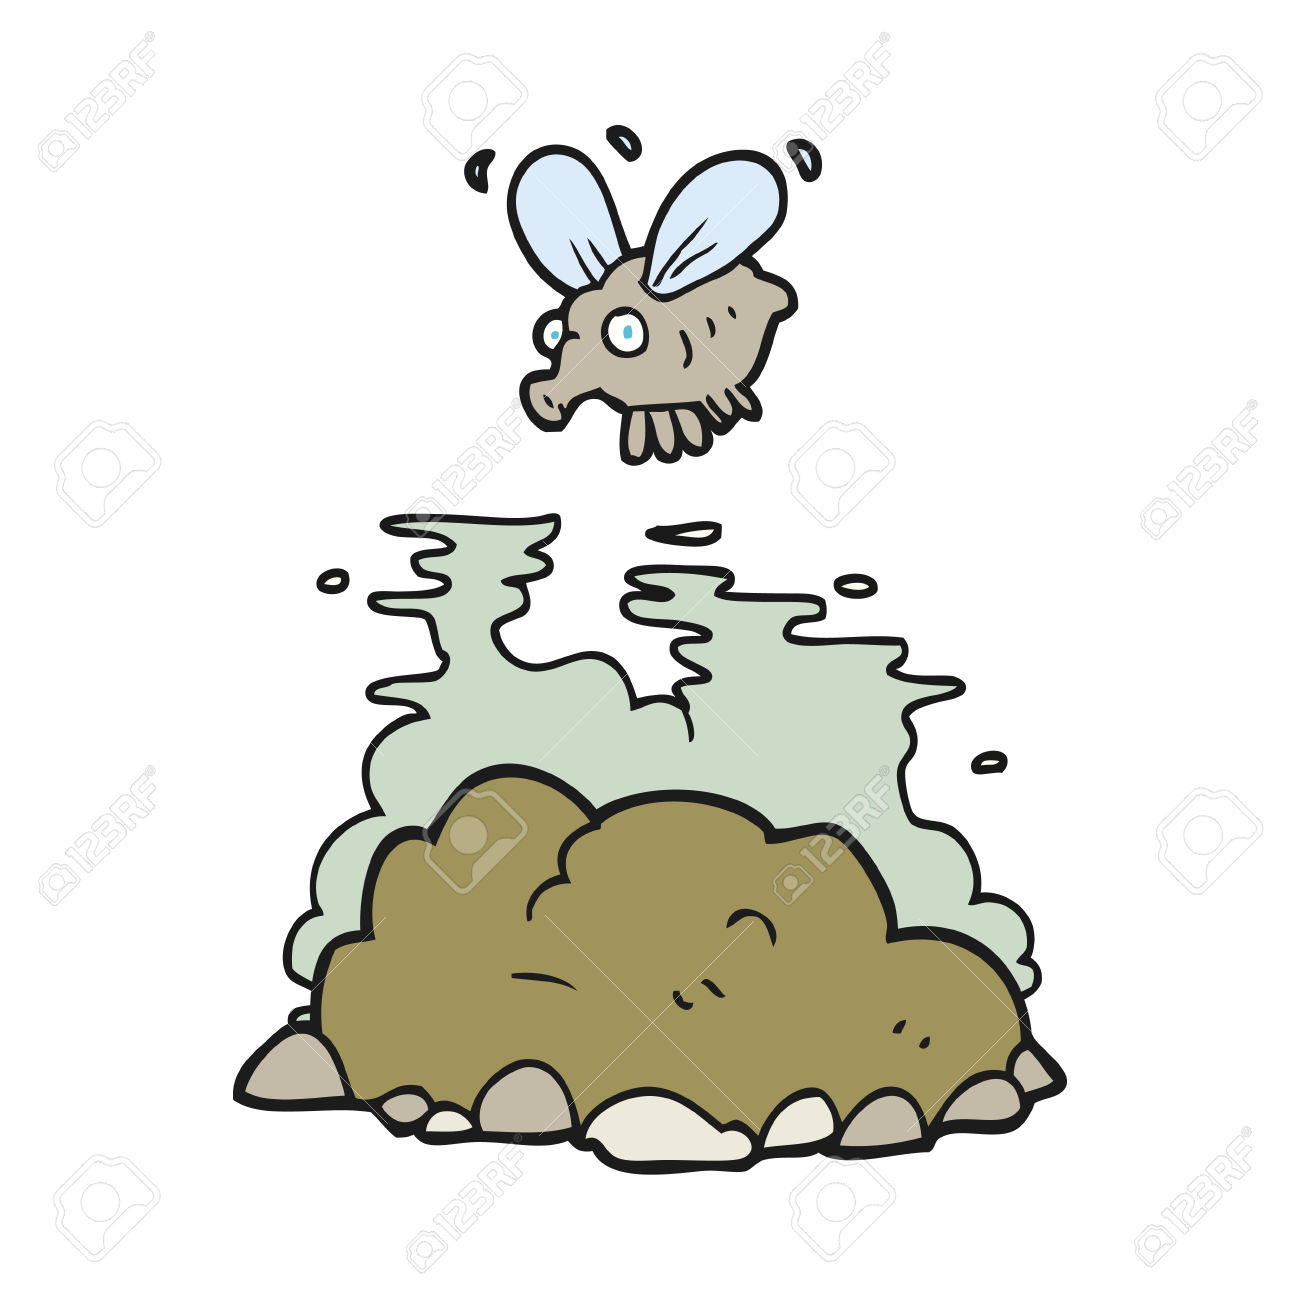 Freehand Drawn Cartoon Fly And Manure Royalty Free Cliparts.